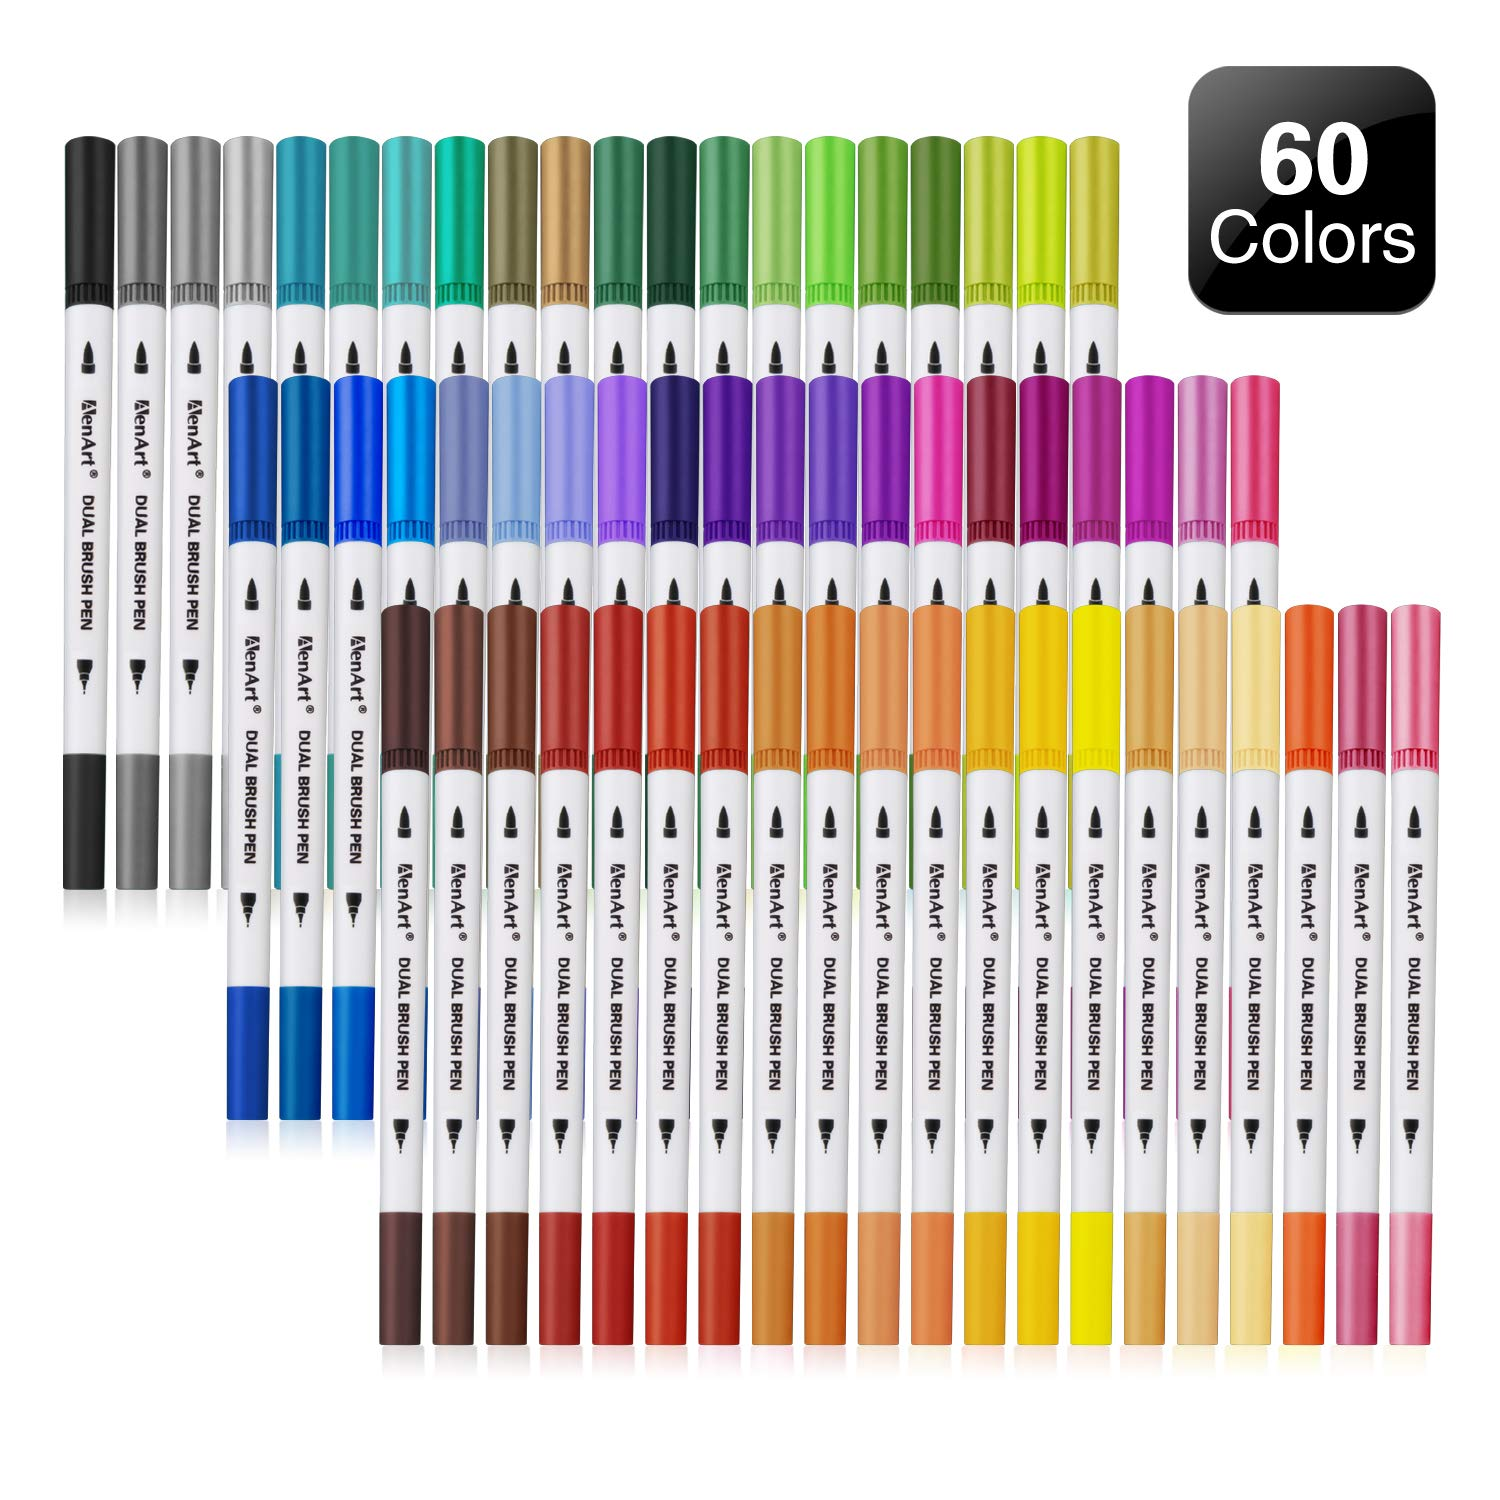 Dual Tip Brush Markers Pen 60 Colors, Fine and Brush Tip Colored Dual Pens for Coloring Books, Drawing, Bullet Journal, Planner, School Art Projects by Aen Art